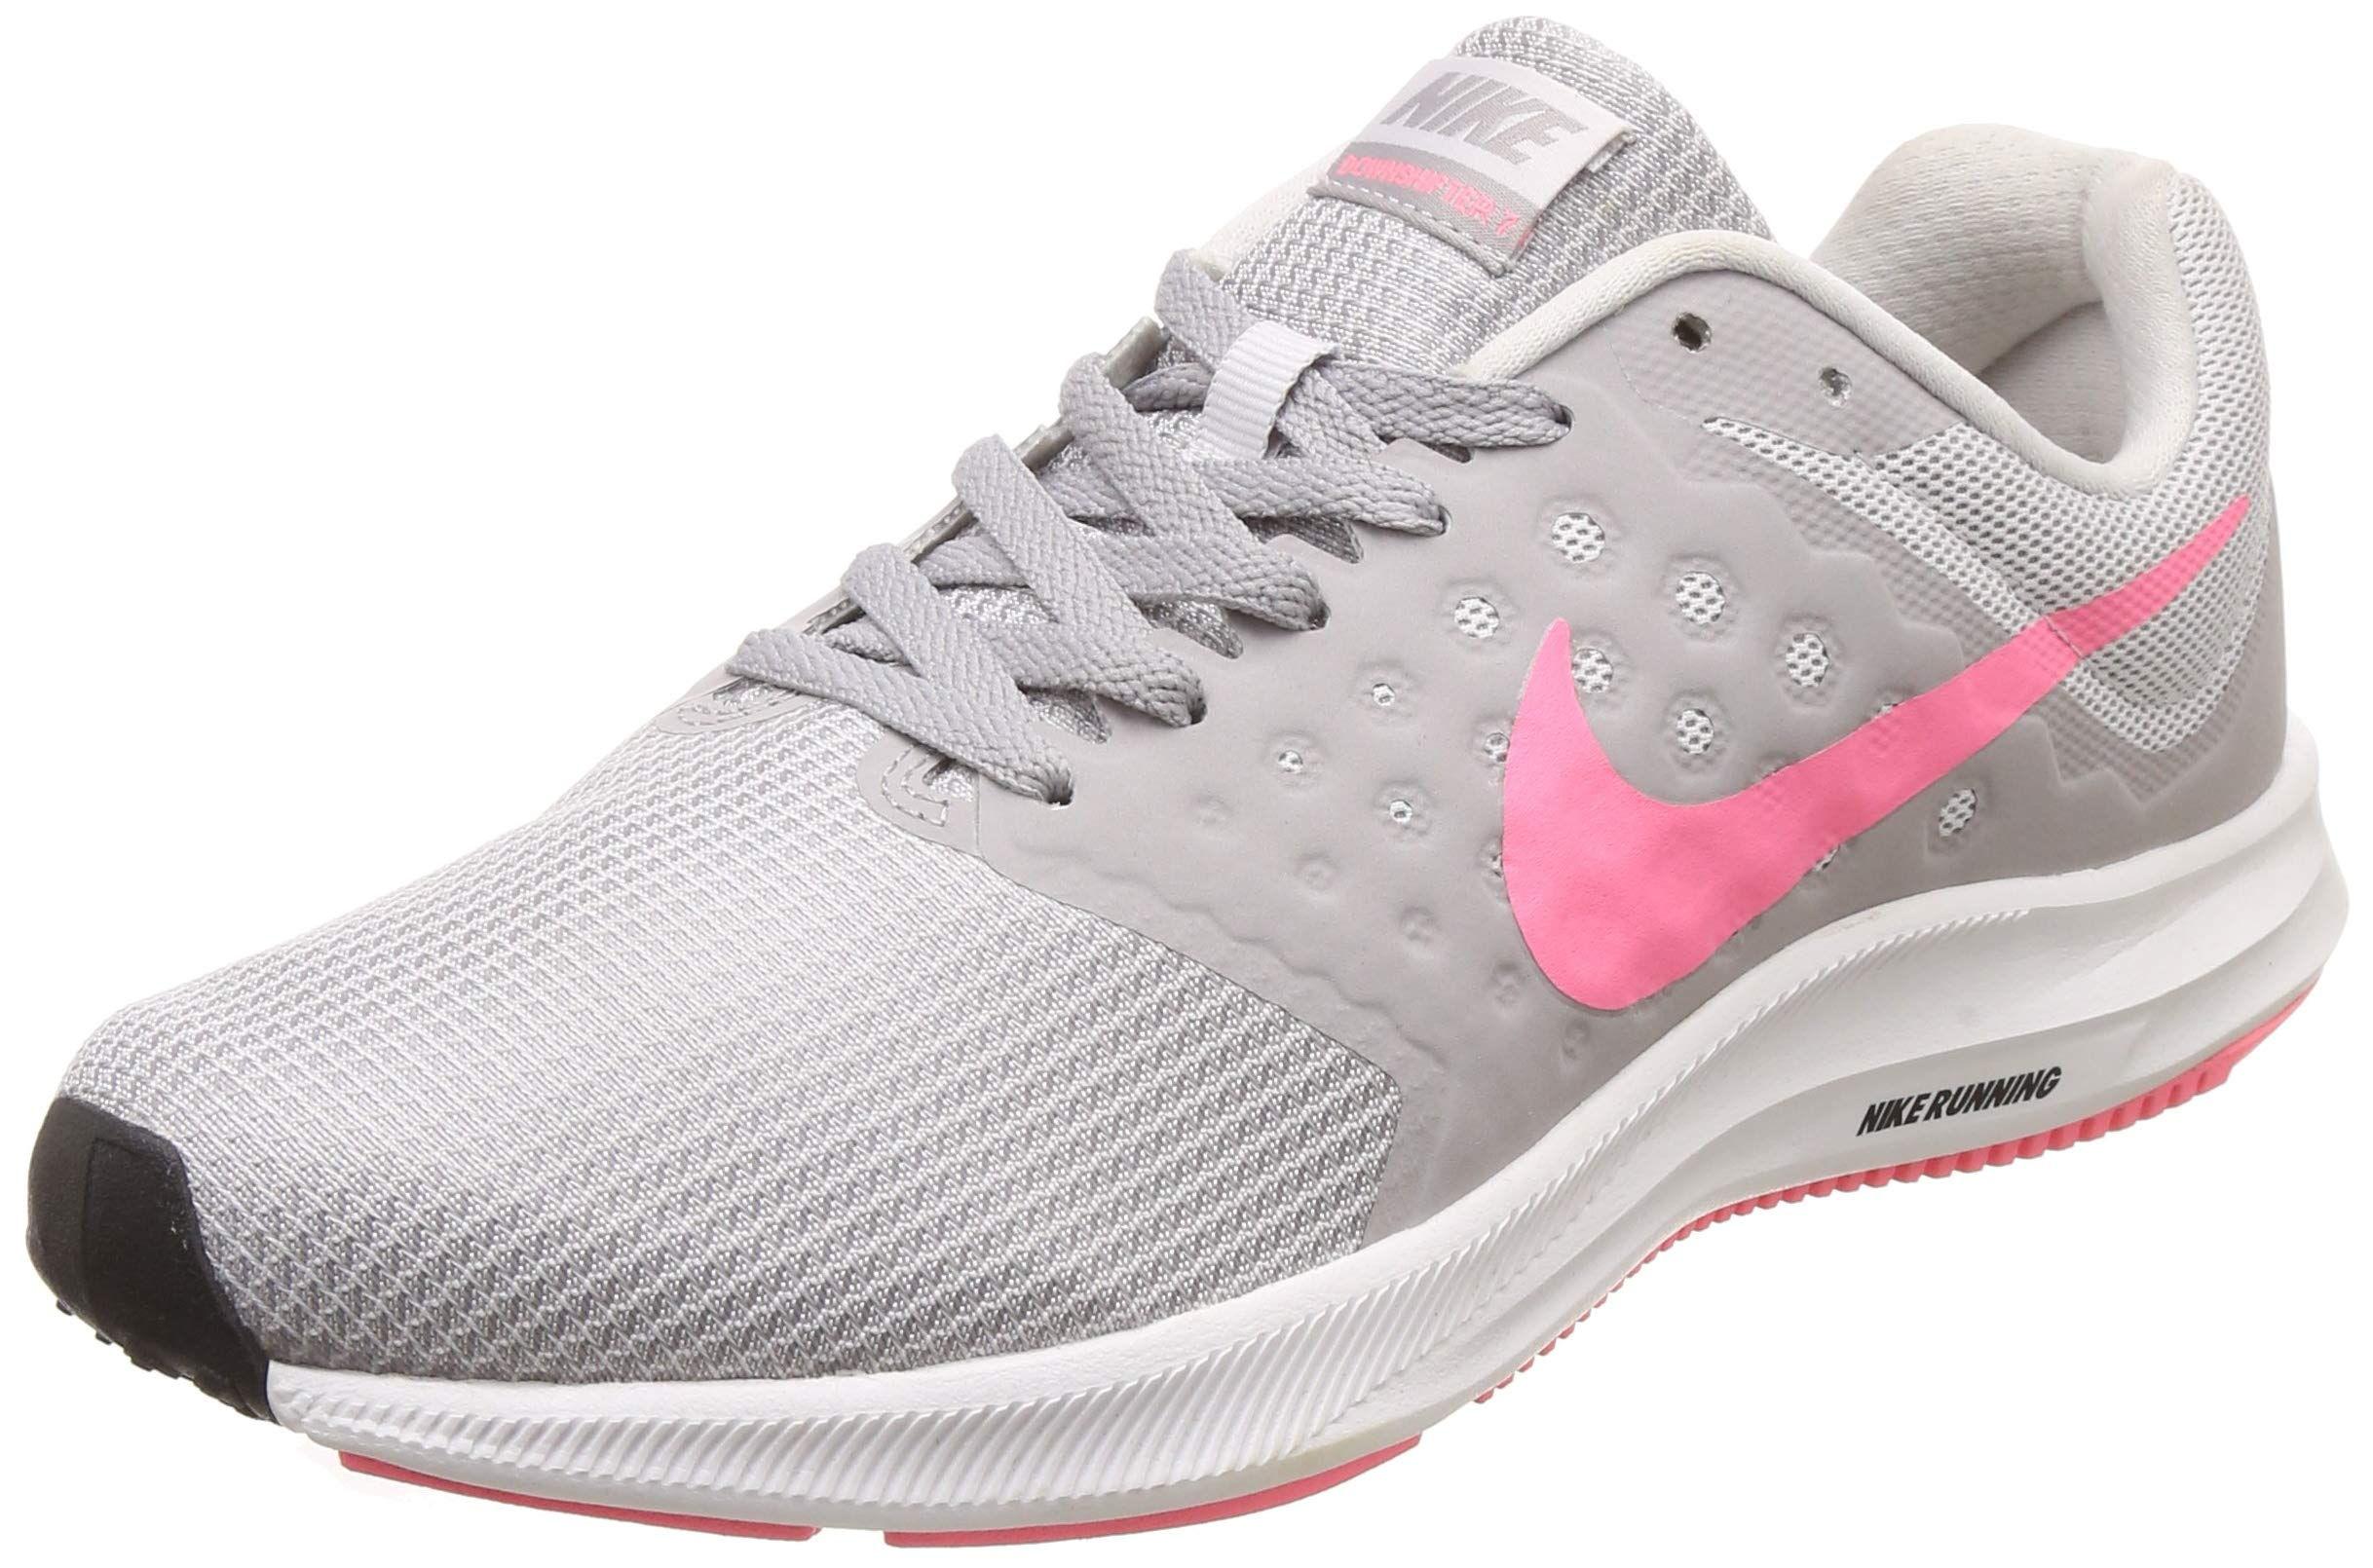 b61c096a3280e Galleon - Nike Women s Downshifter 7 Running Shoe Vast Grey Sunset Pulse Atmosphere  Grey Size 6.5 M US